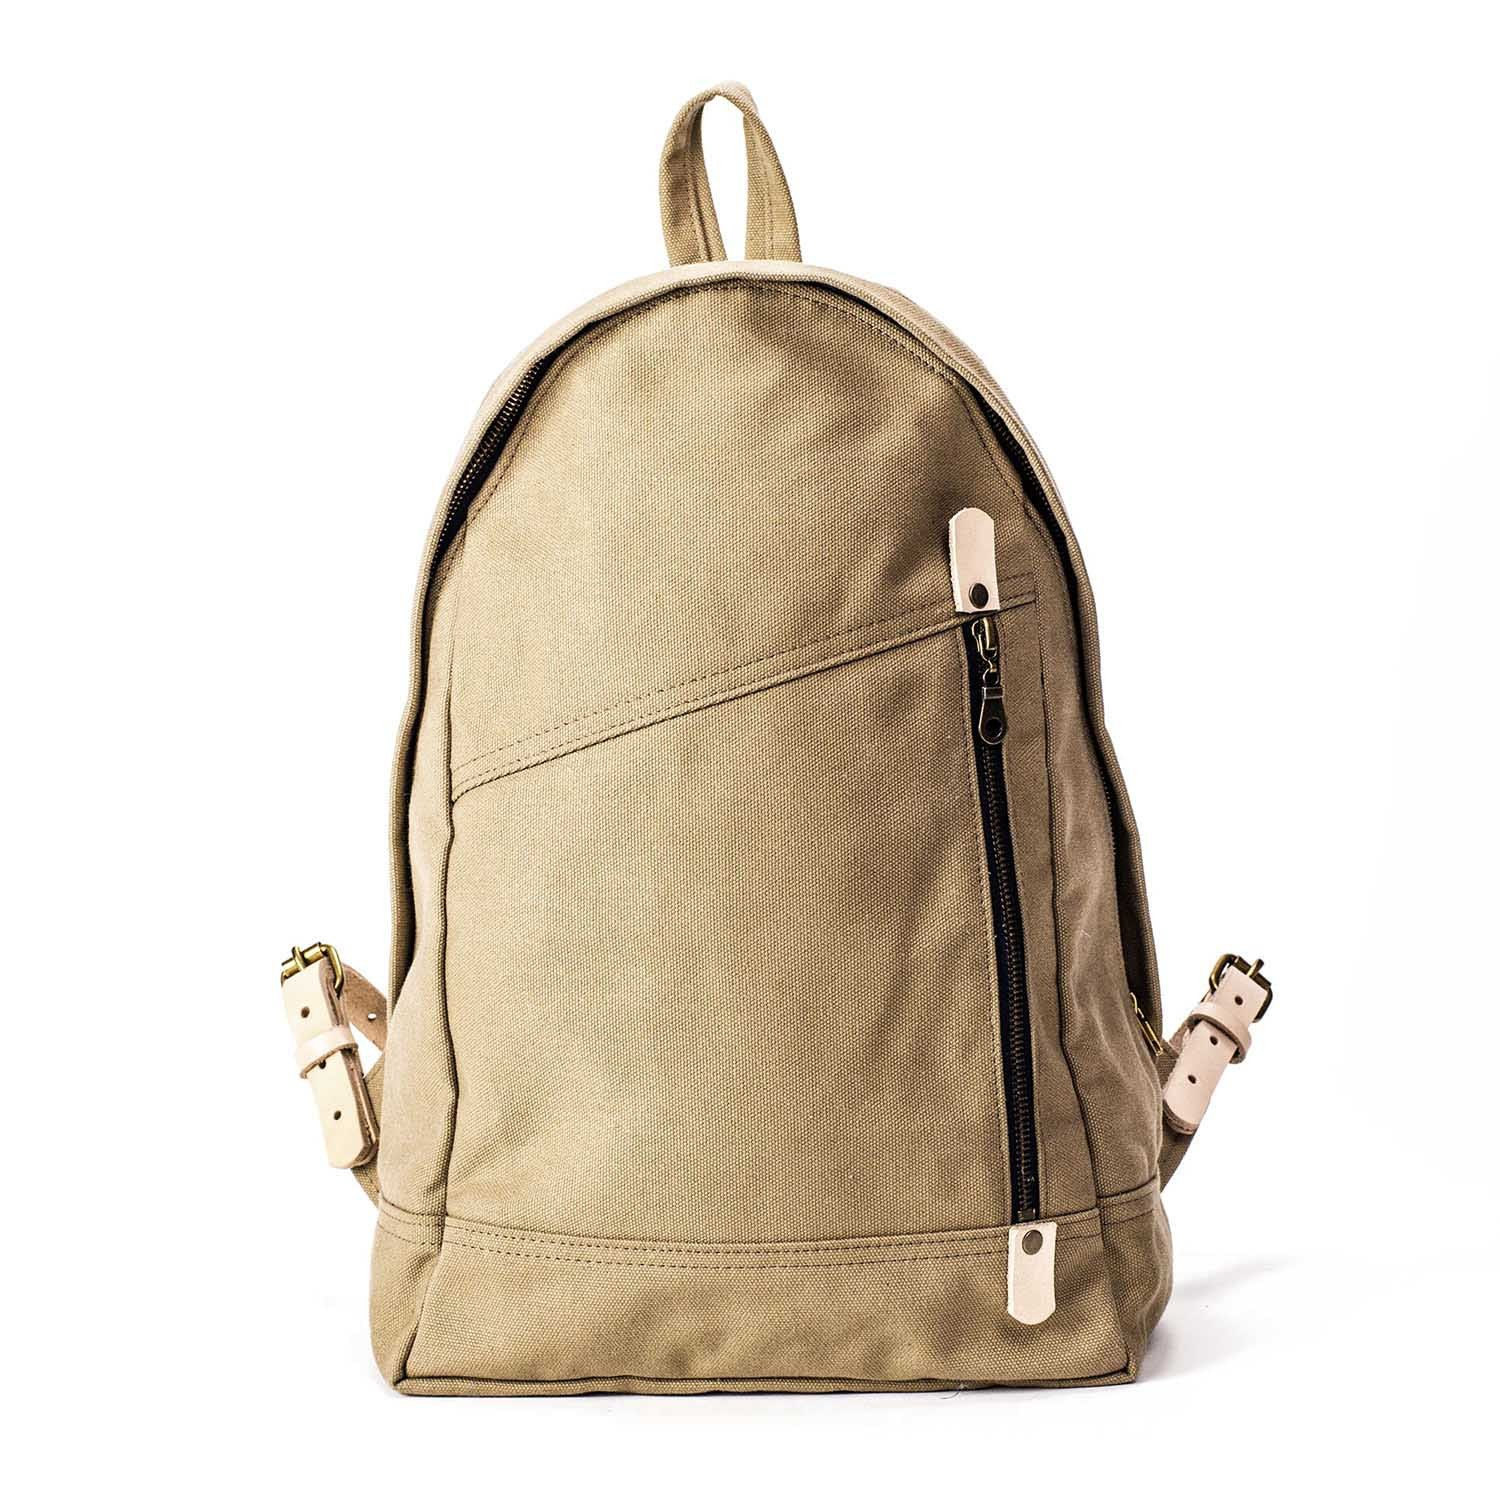 stone and cloth backpack 2